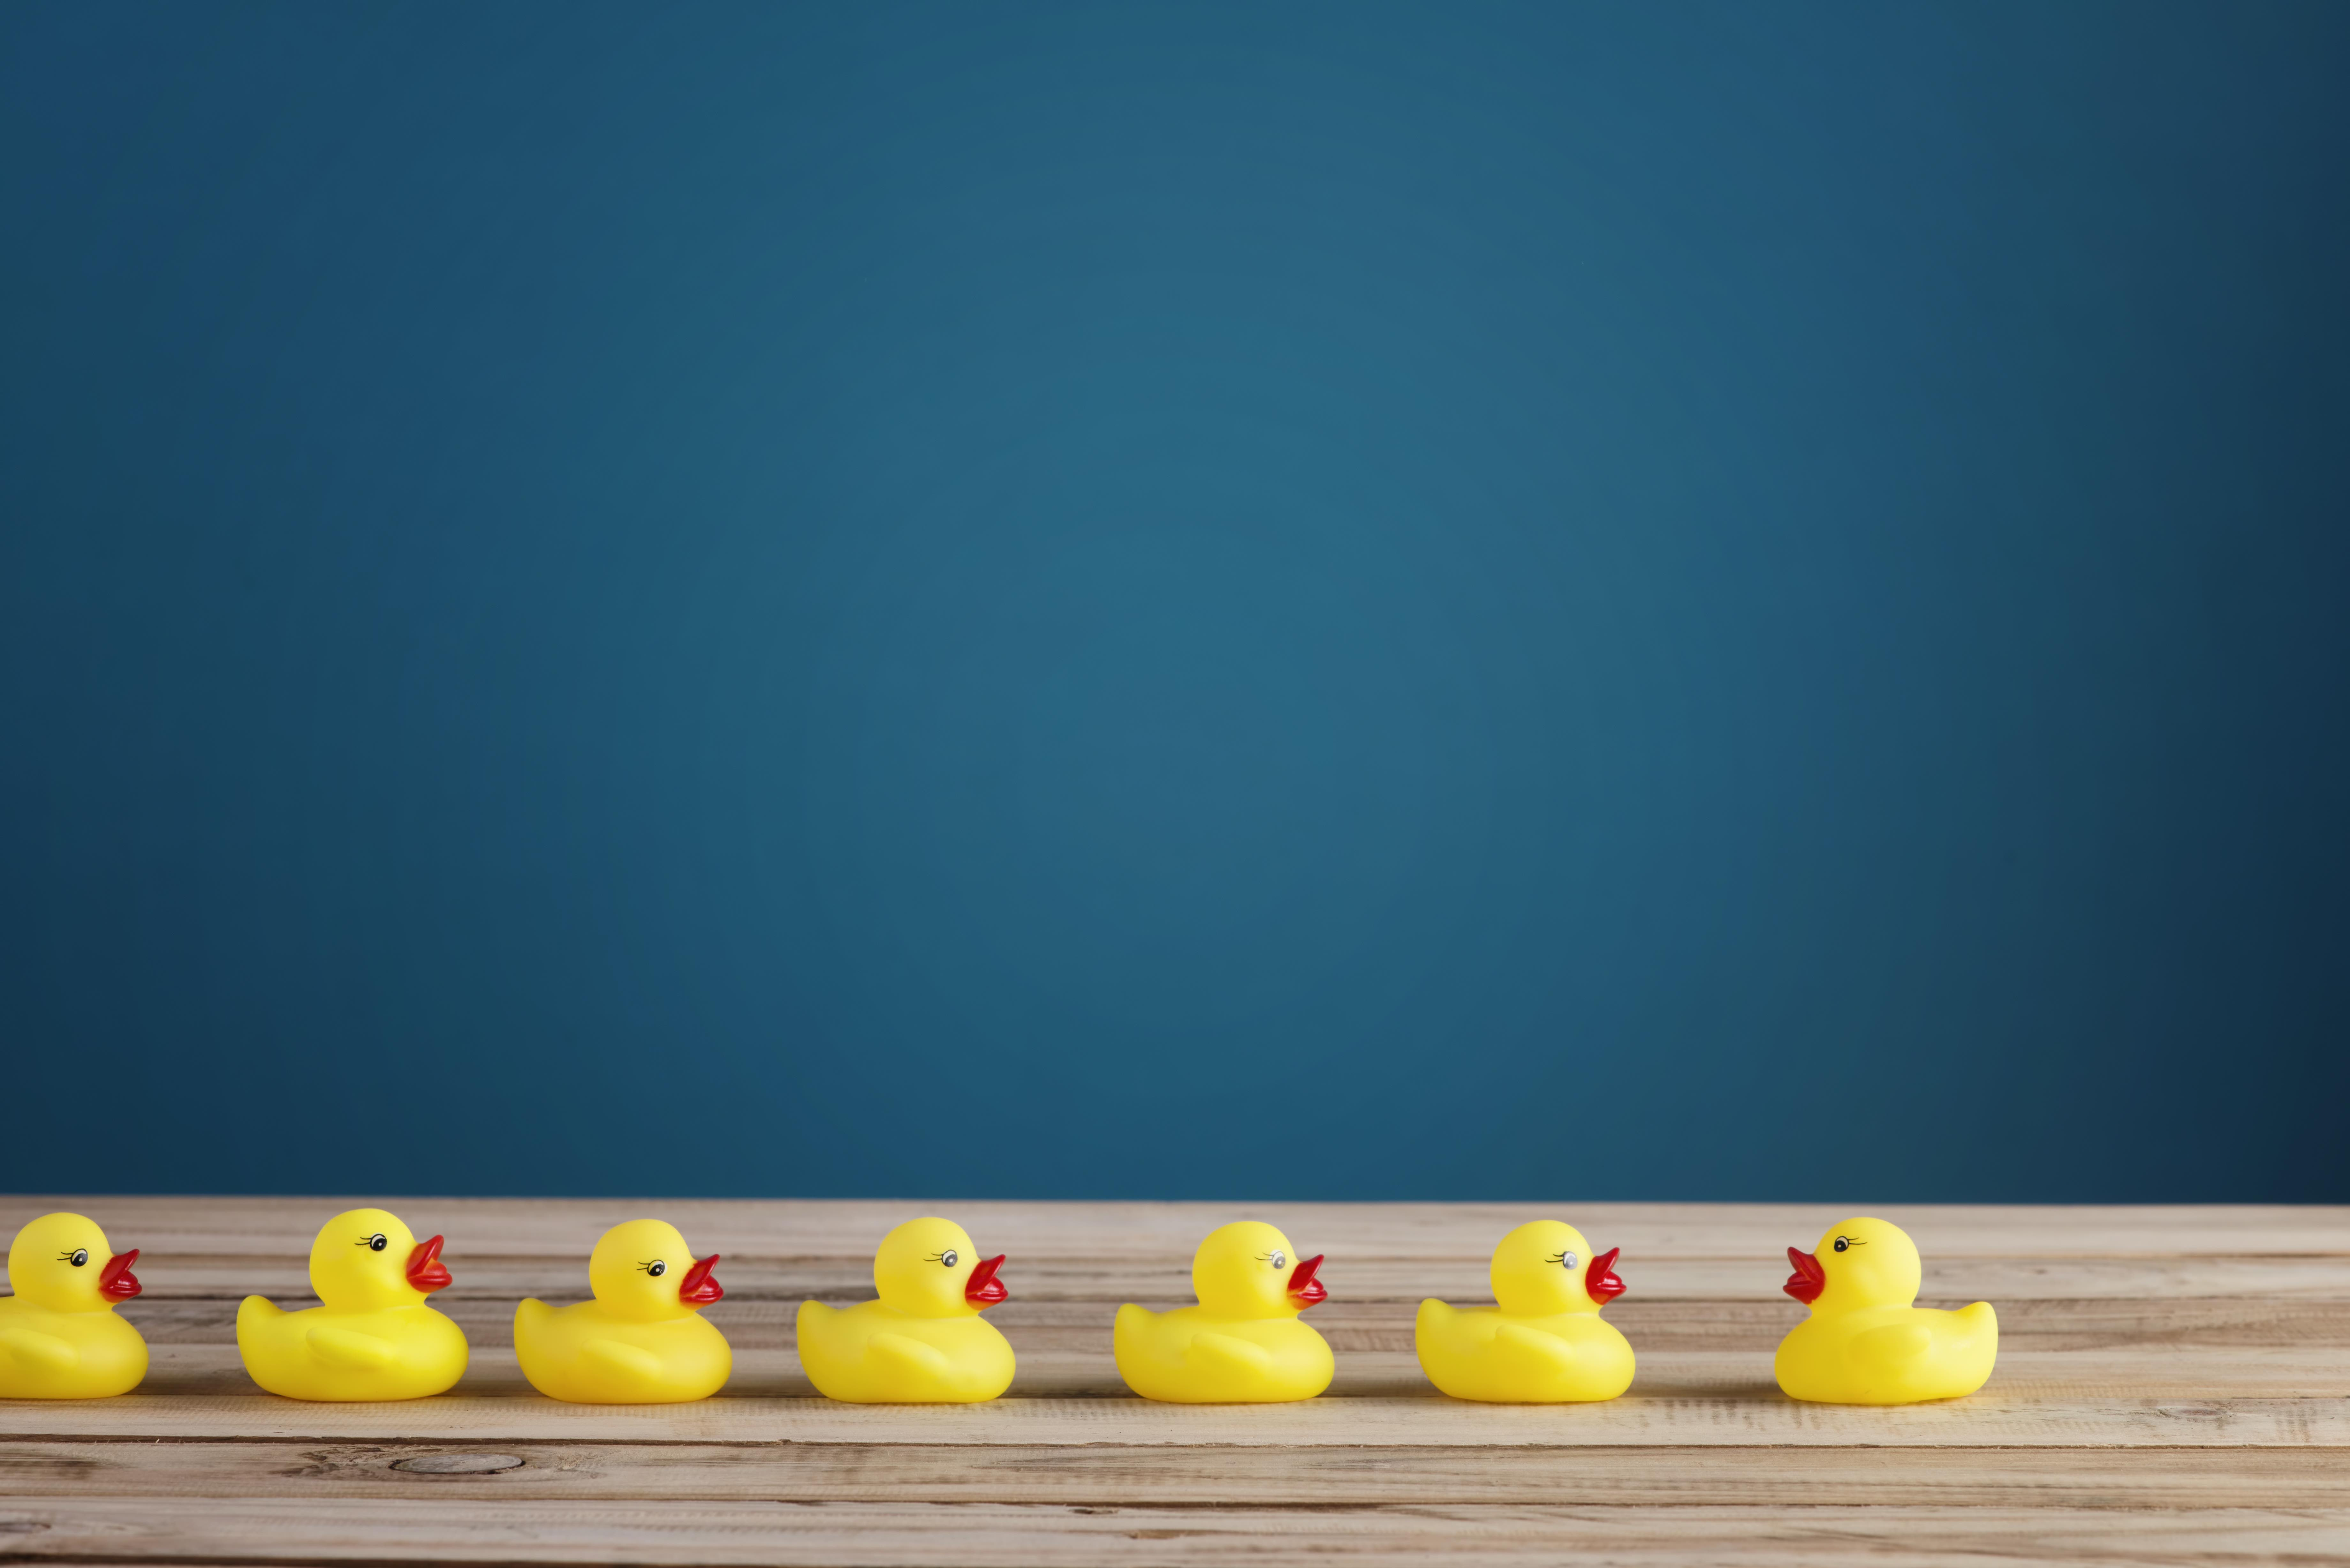 row-of-toy-rubber-ducks